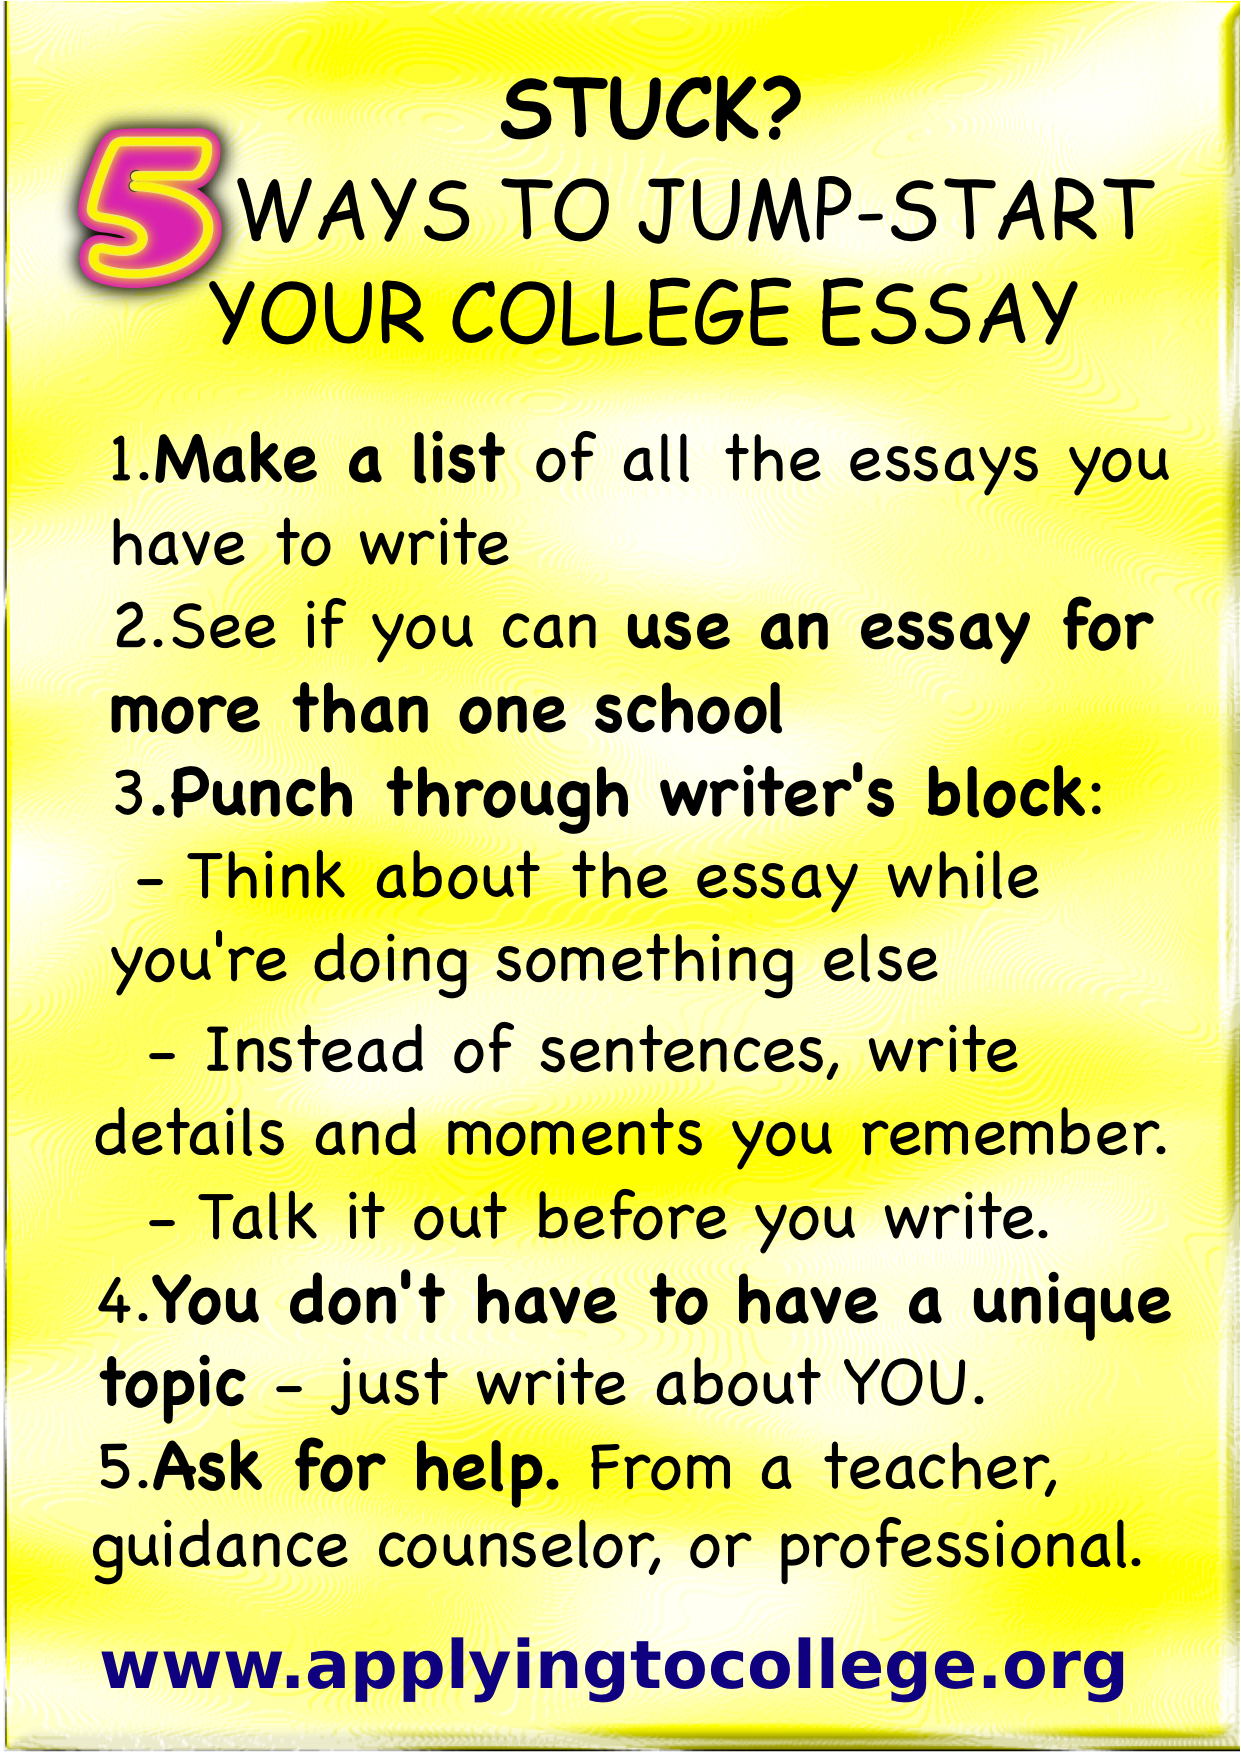 college application essays 2012 With instant access to more than 700 colleges and universities around the world, the common app is the most seamless way to manage the application process.